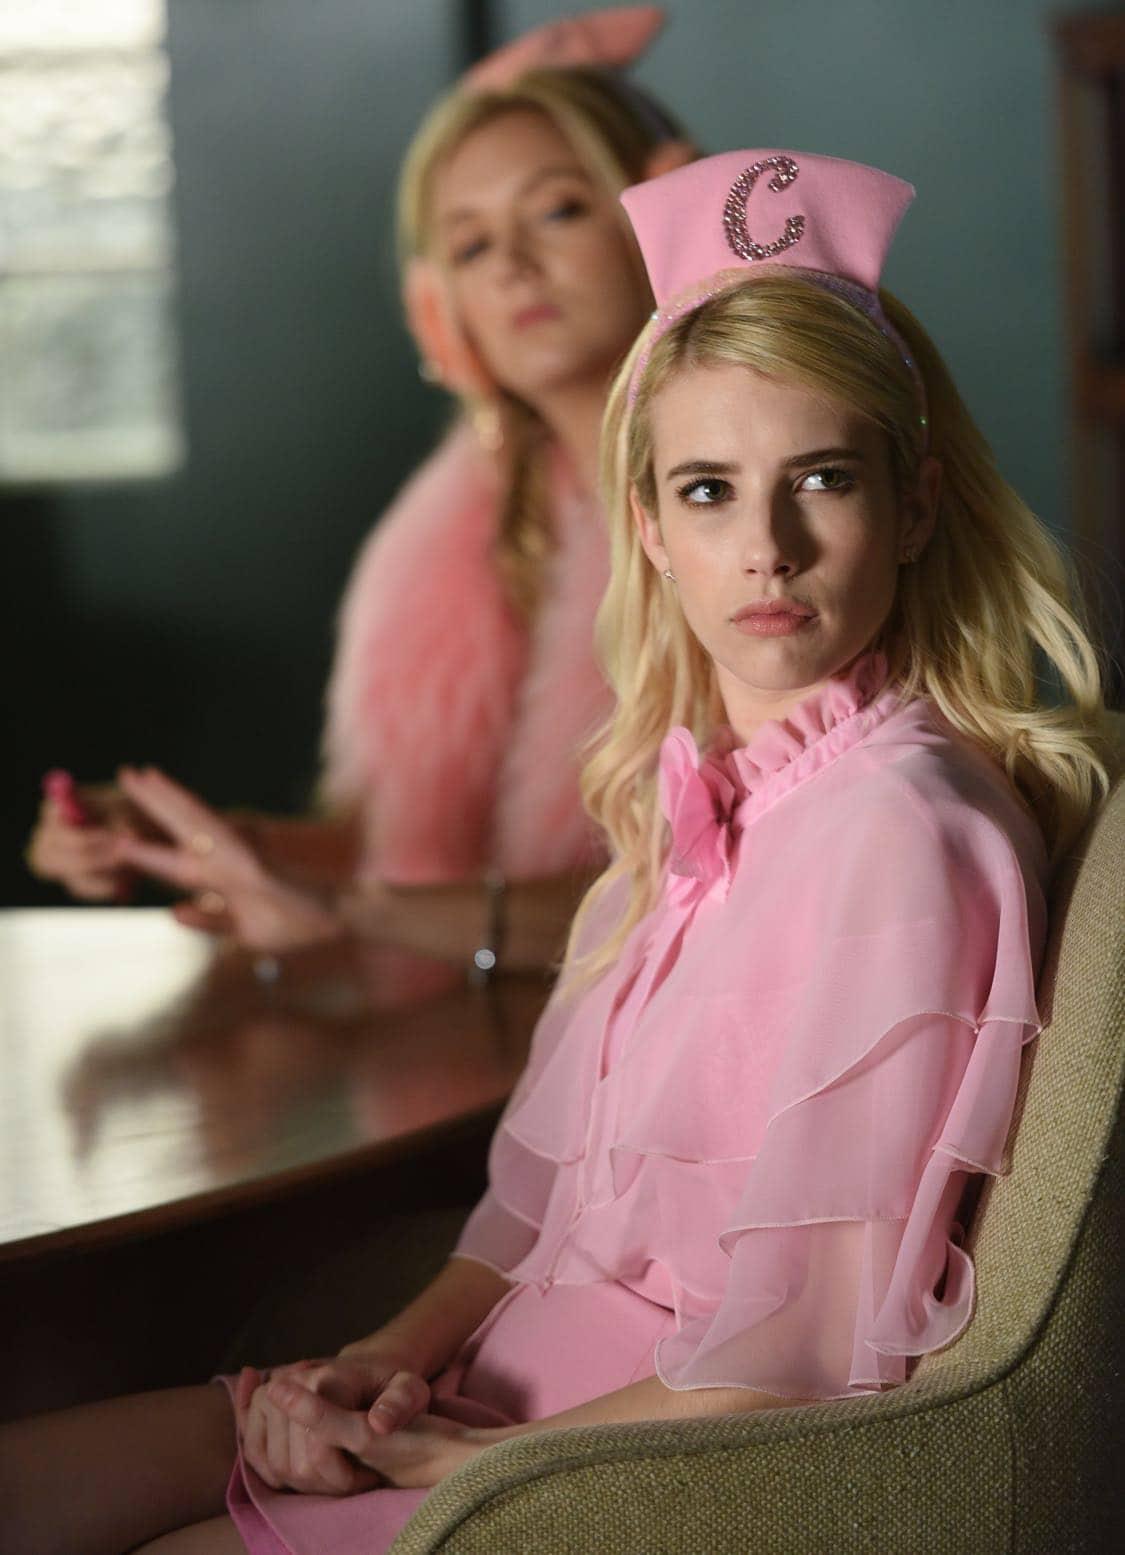 """SCREAM QUEENS: Emma Roberts in the all-new """"Warts and All"""" episode of SCREAM QUEENS airing Tuesday, Sep. 27 (9:01-10:00 PM ET/PT) on FOX. Cr: Michael Becker / FOX. © 2016 FOX Broadcasting Co."""